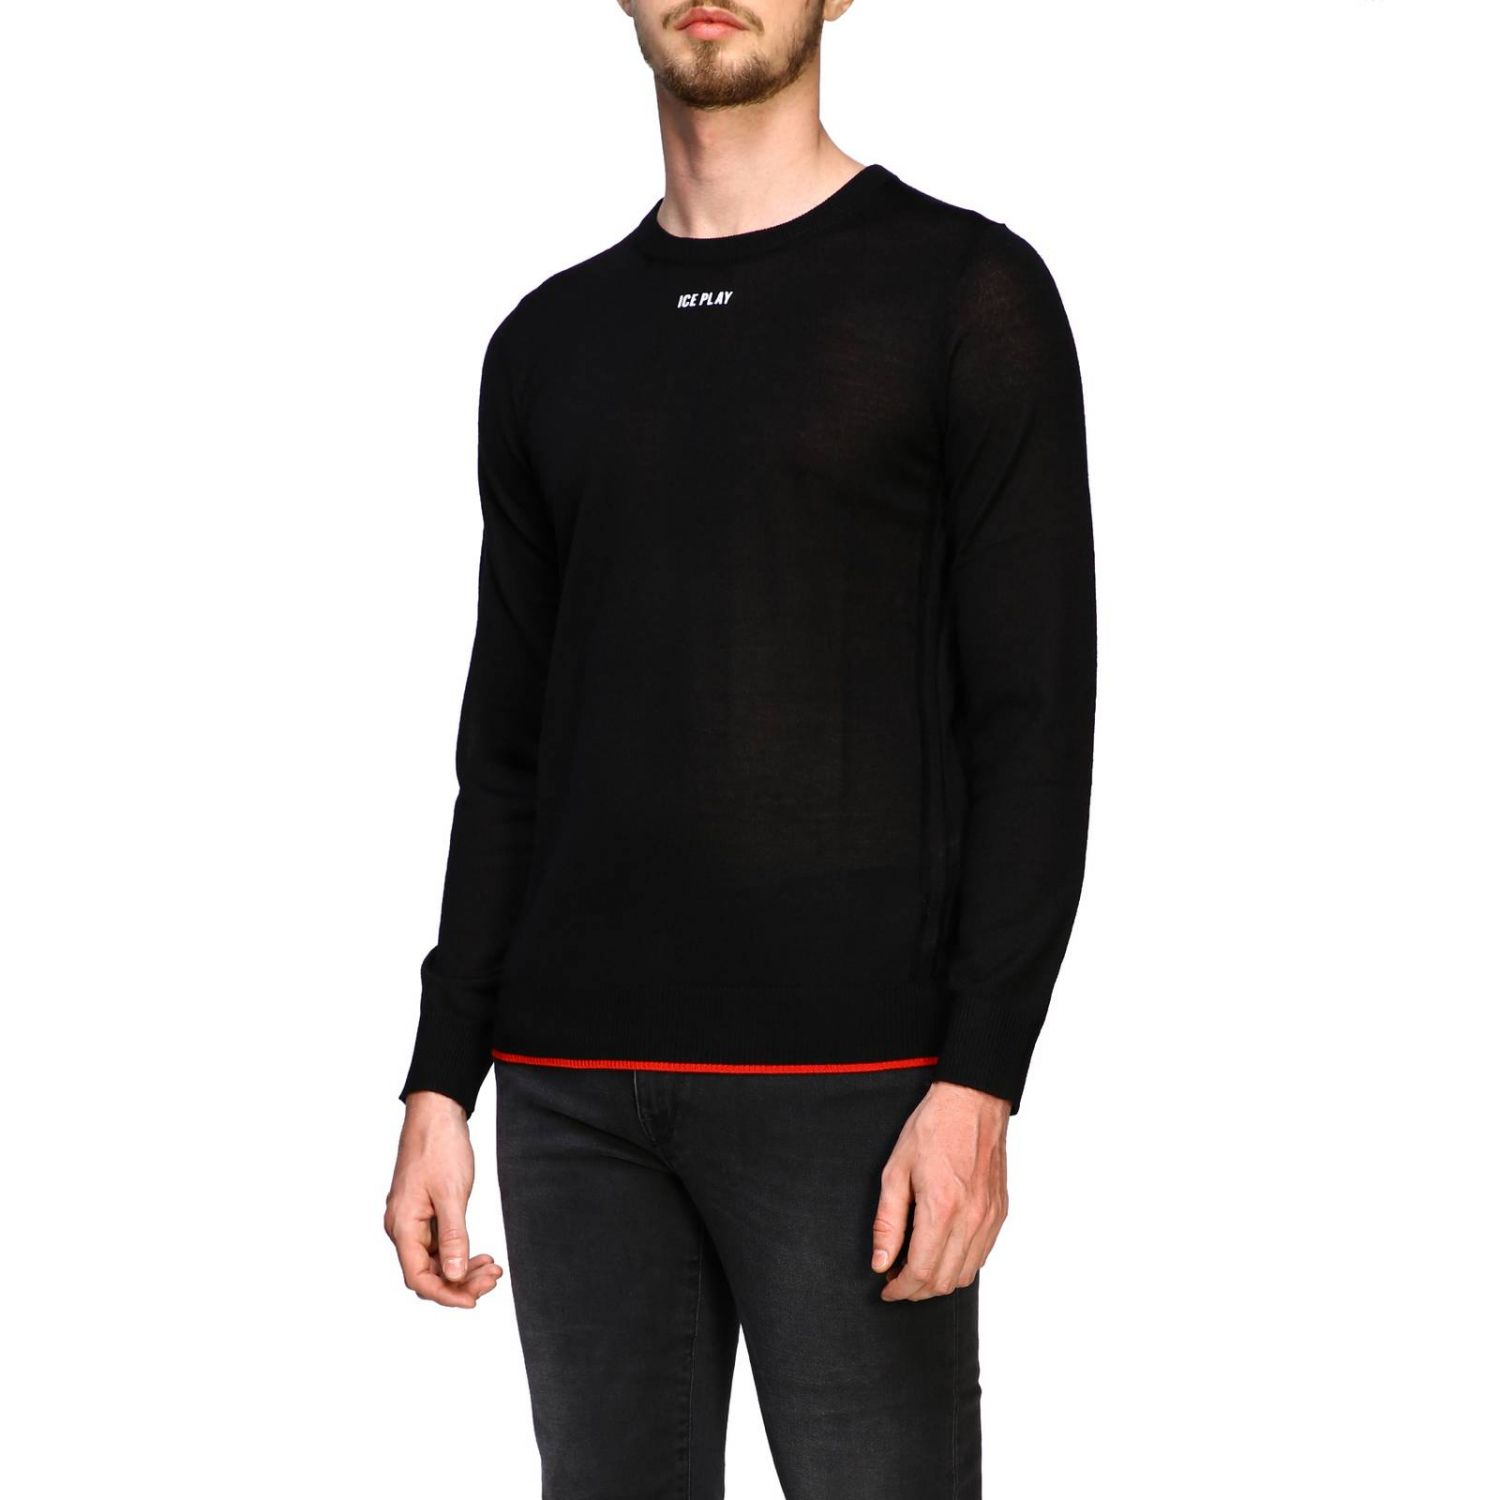 Sweater men Ice Play black 4